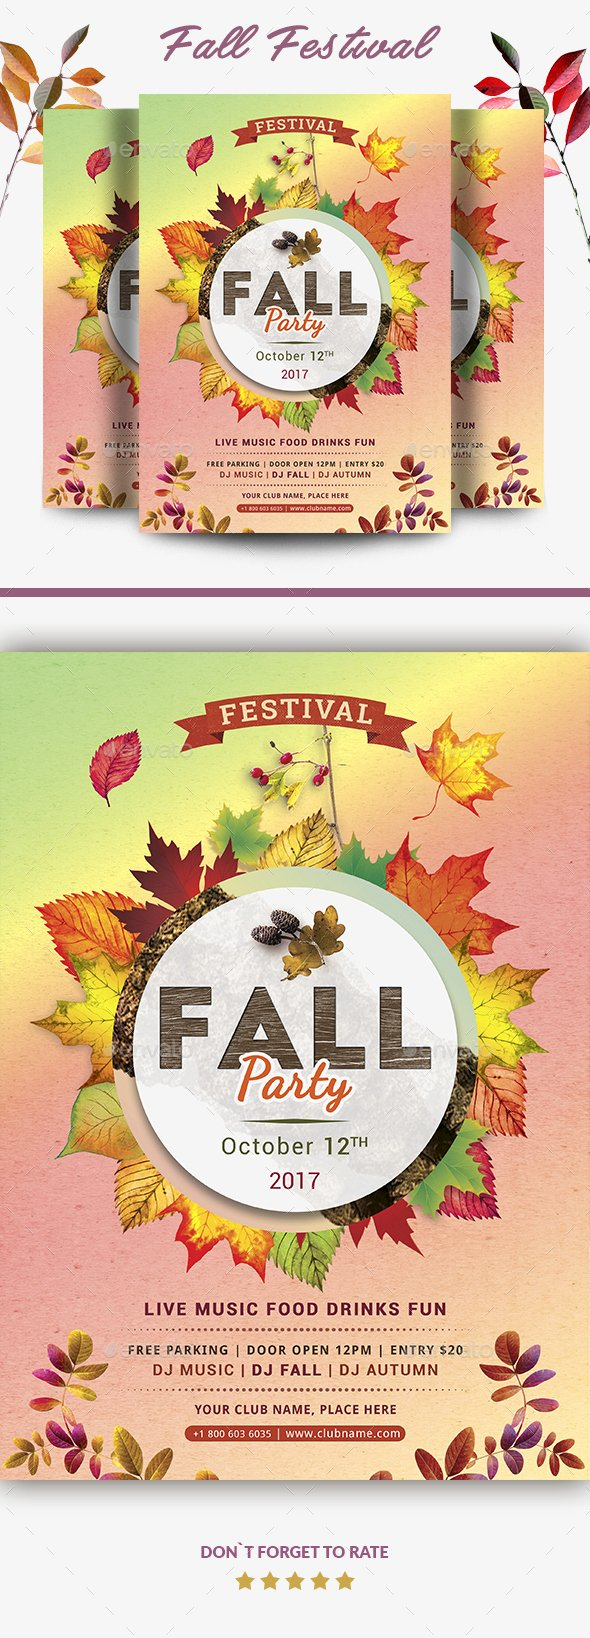 Fall Festival Flyer Template Fresh Fall Festival Flyer Template by Yoopiart